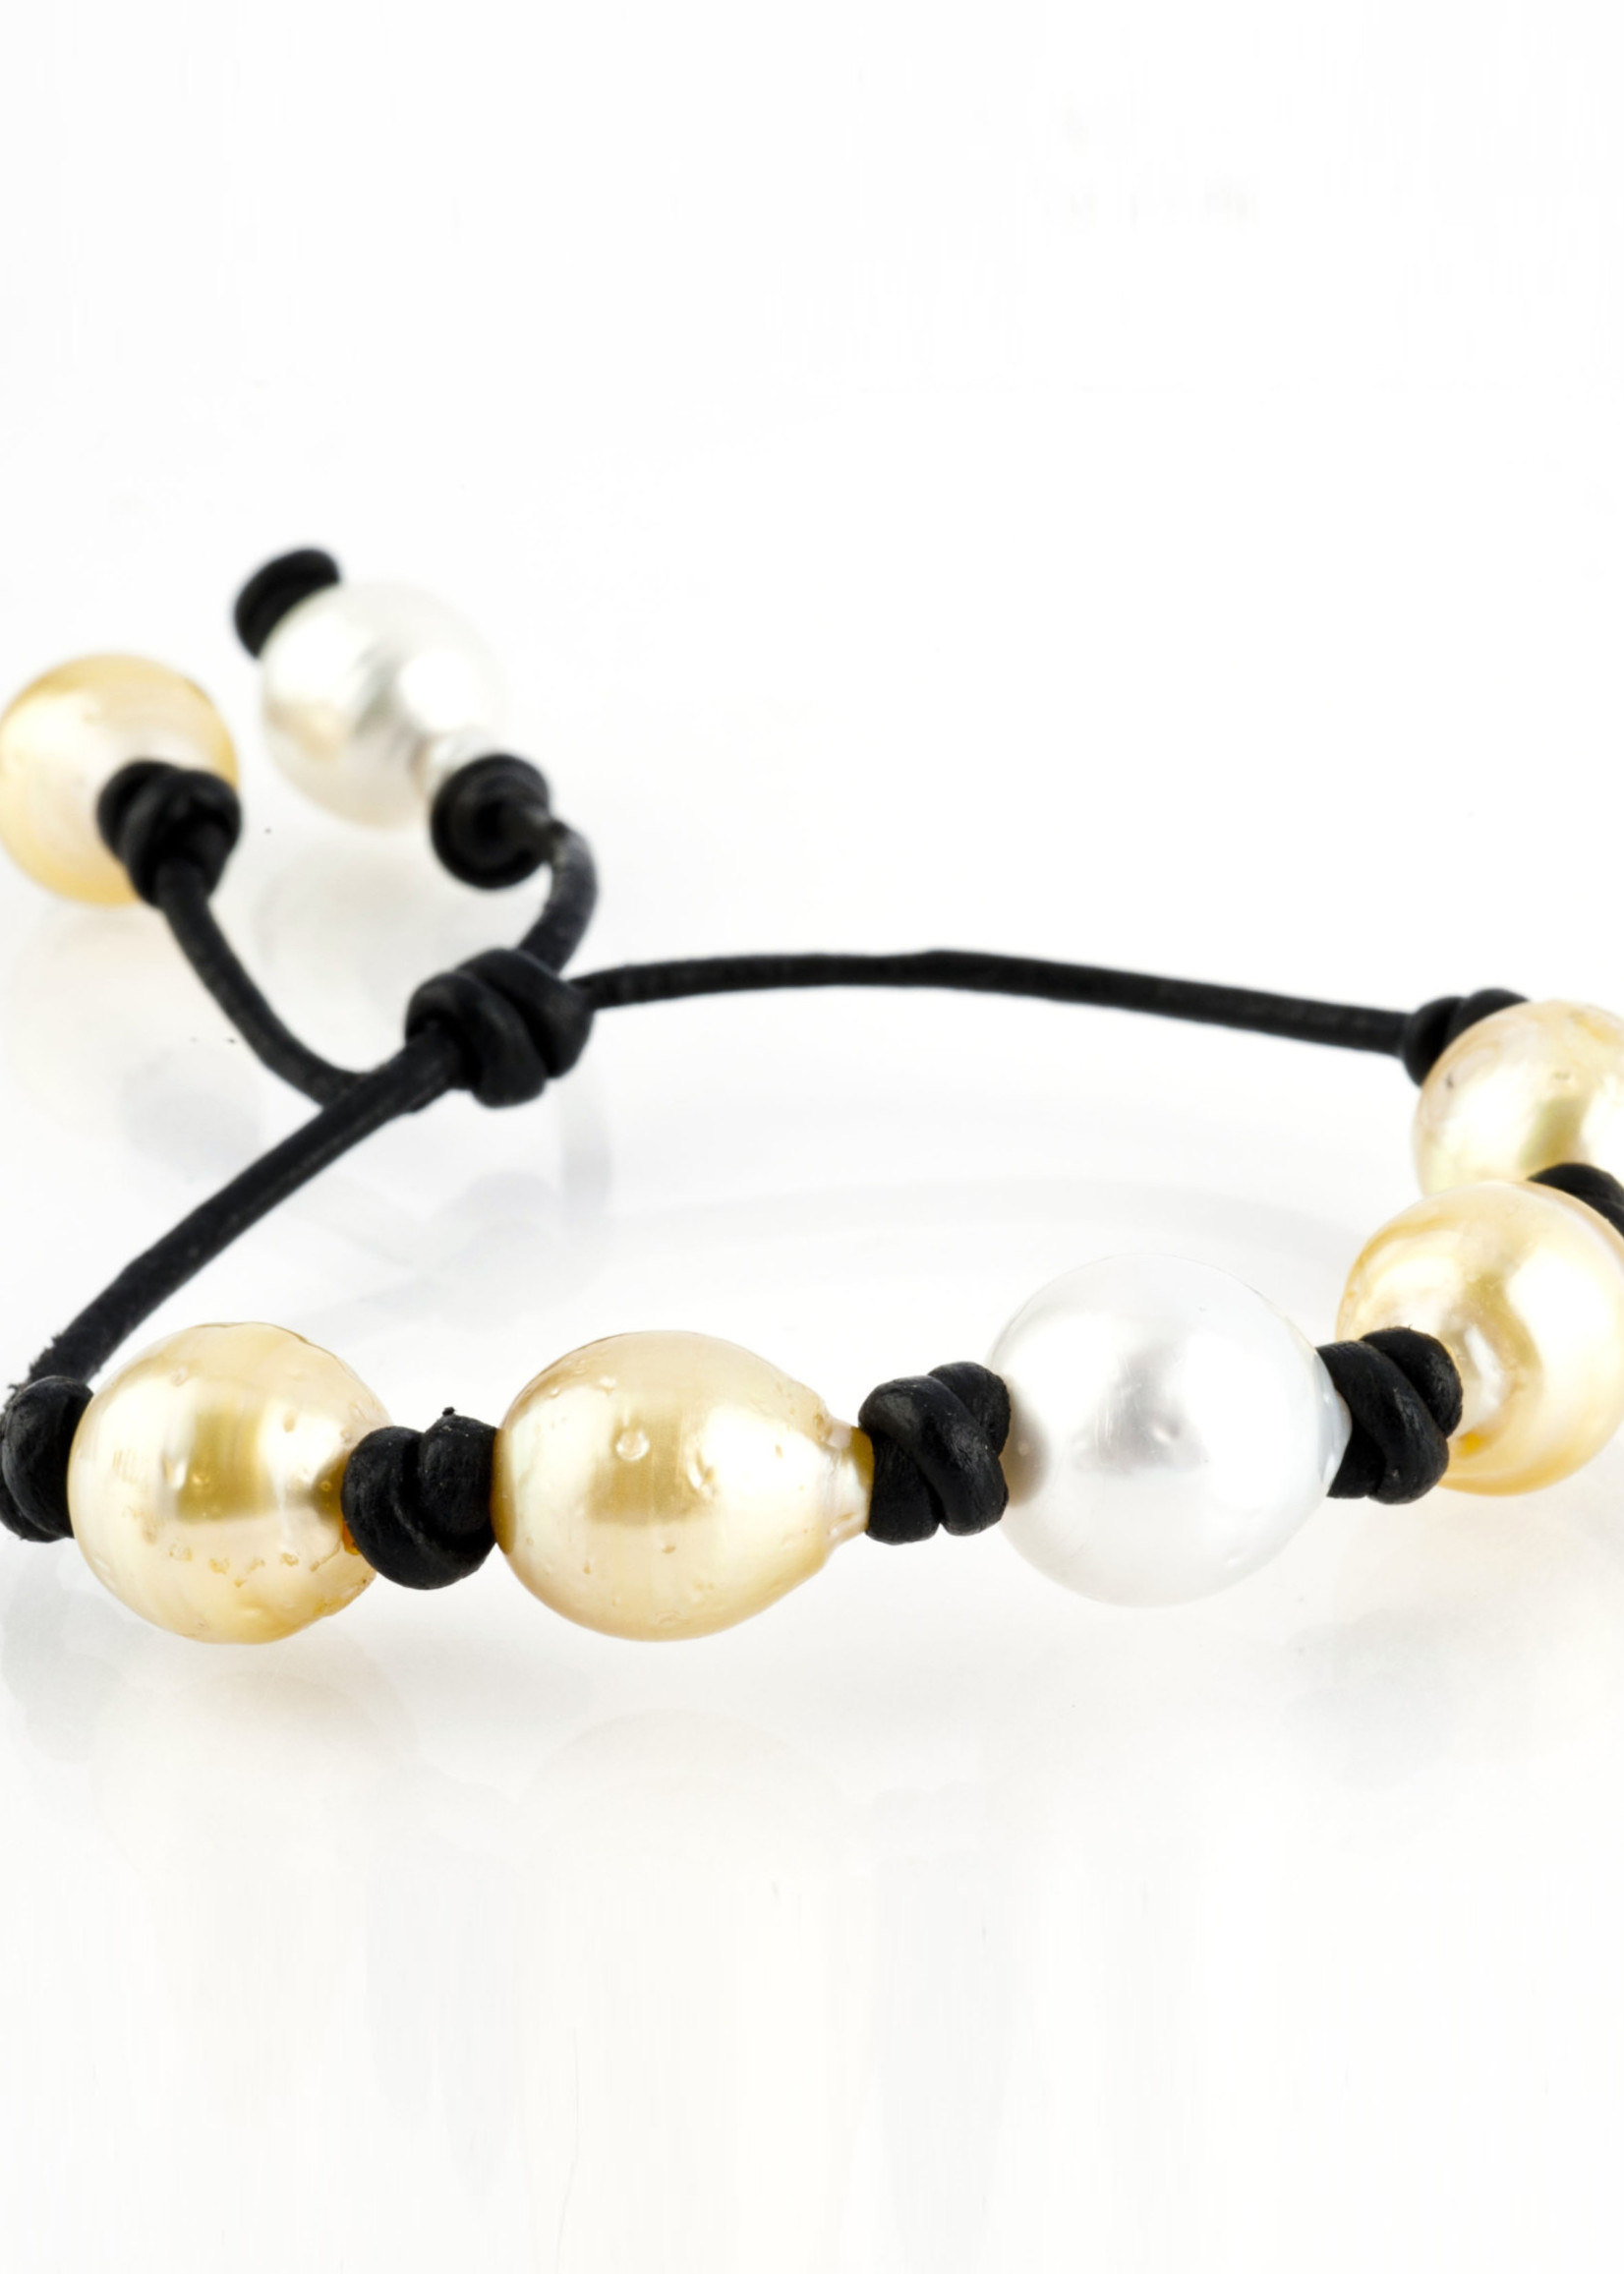 Mina Danielle Yellow and White South Sea and Tahitian Pearl Bracelet on black leather Cord with adjustable sliding closure.